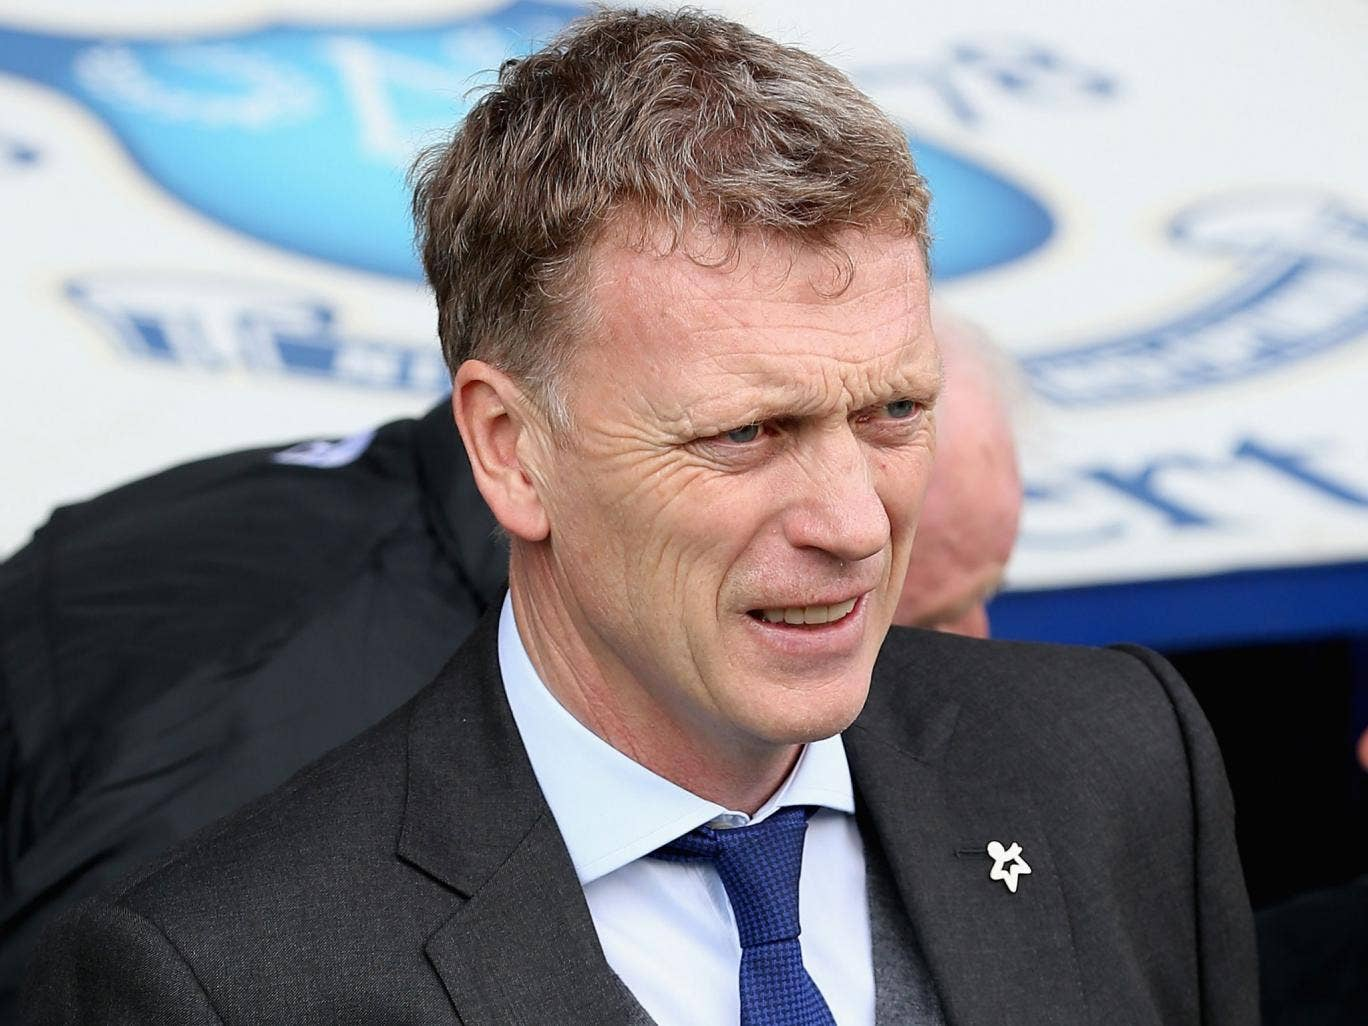 Everton's manager David Moyes said: 'there's been something stronger than football in the last year or two' between Everton and Liverpool